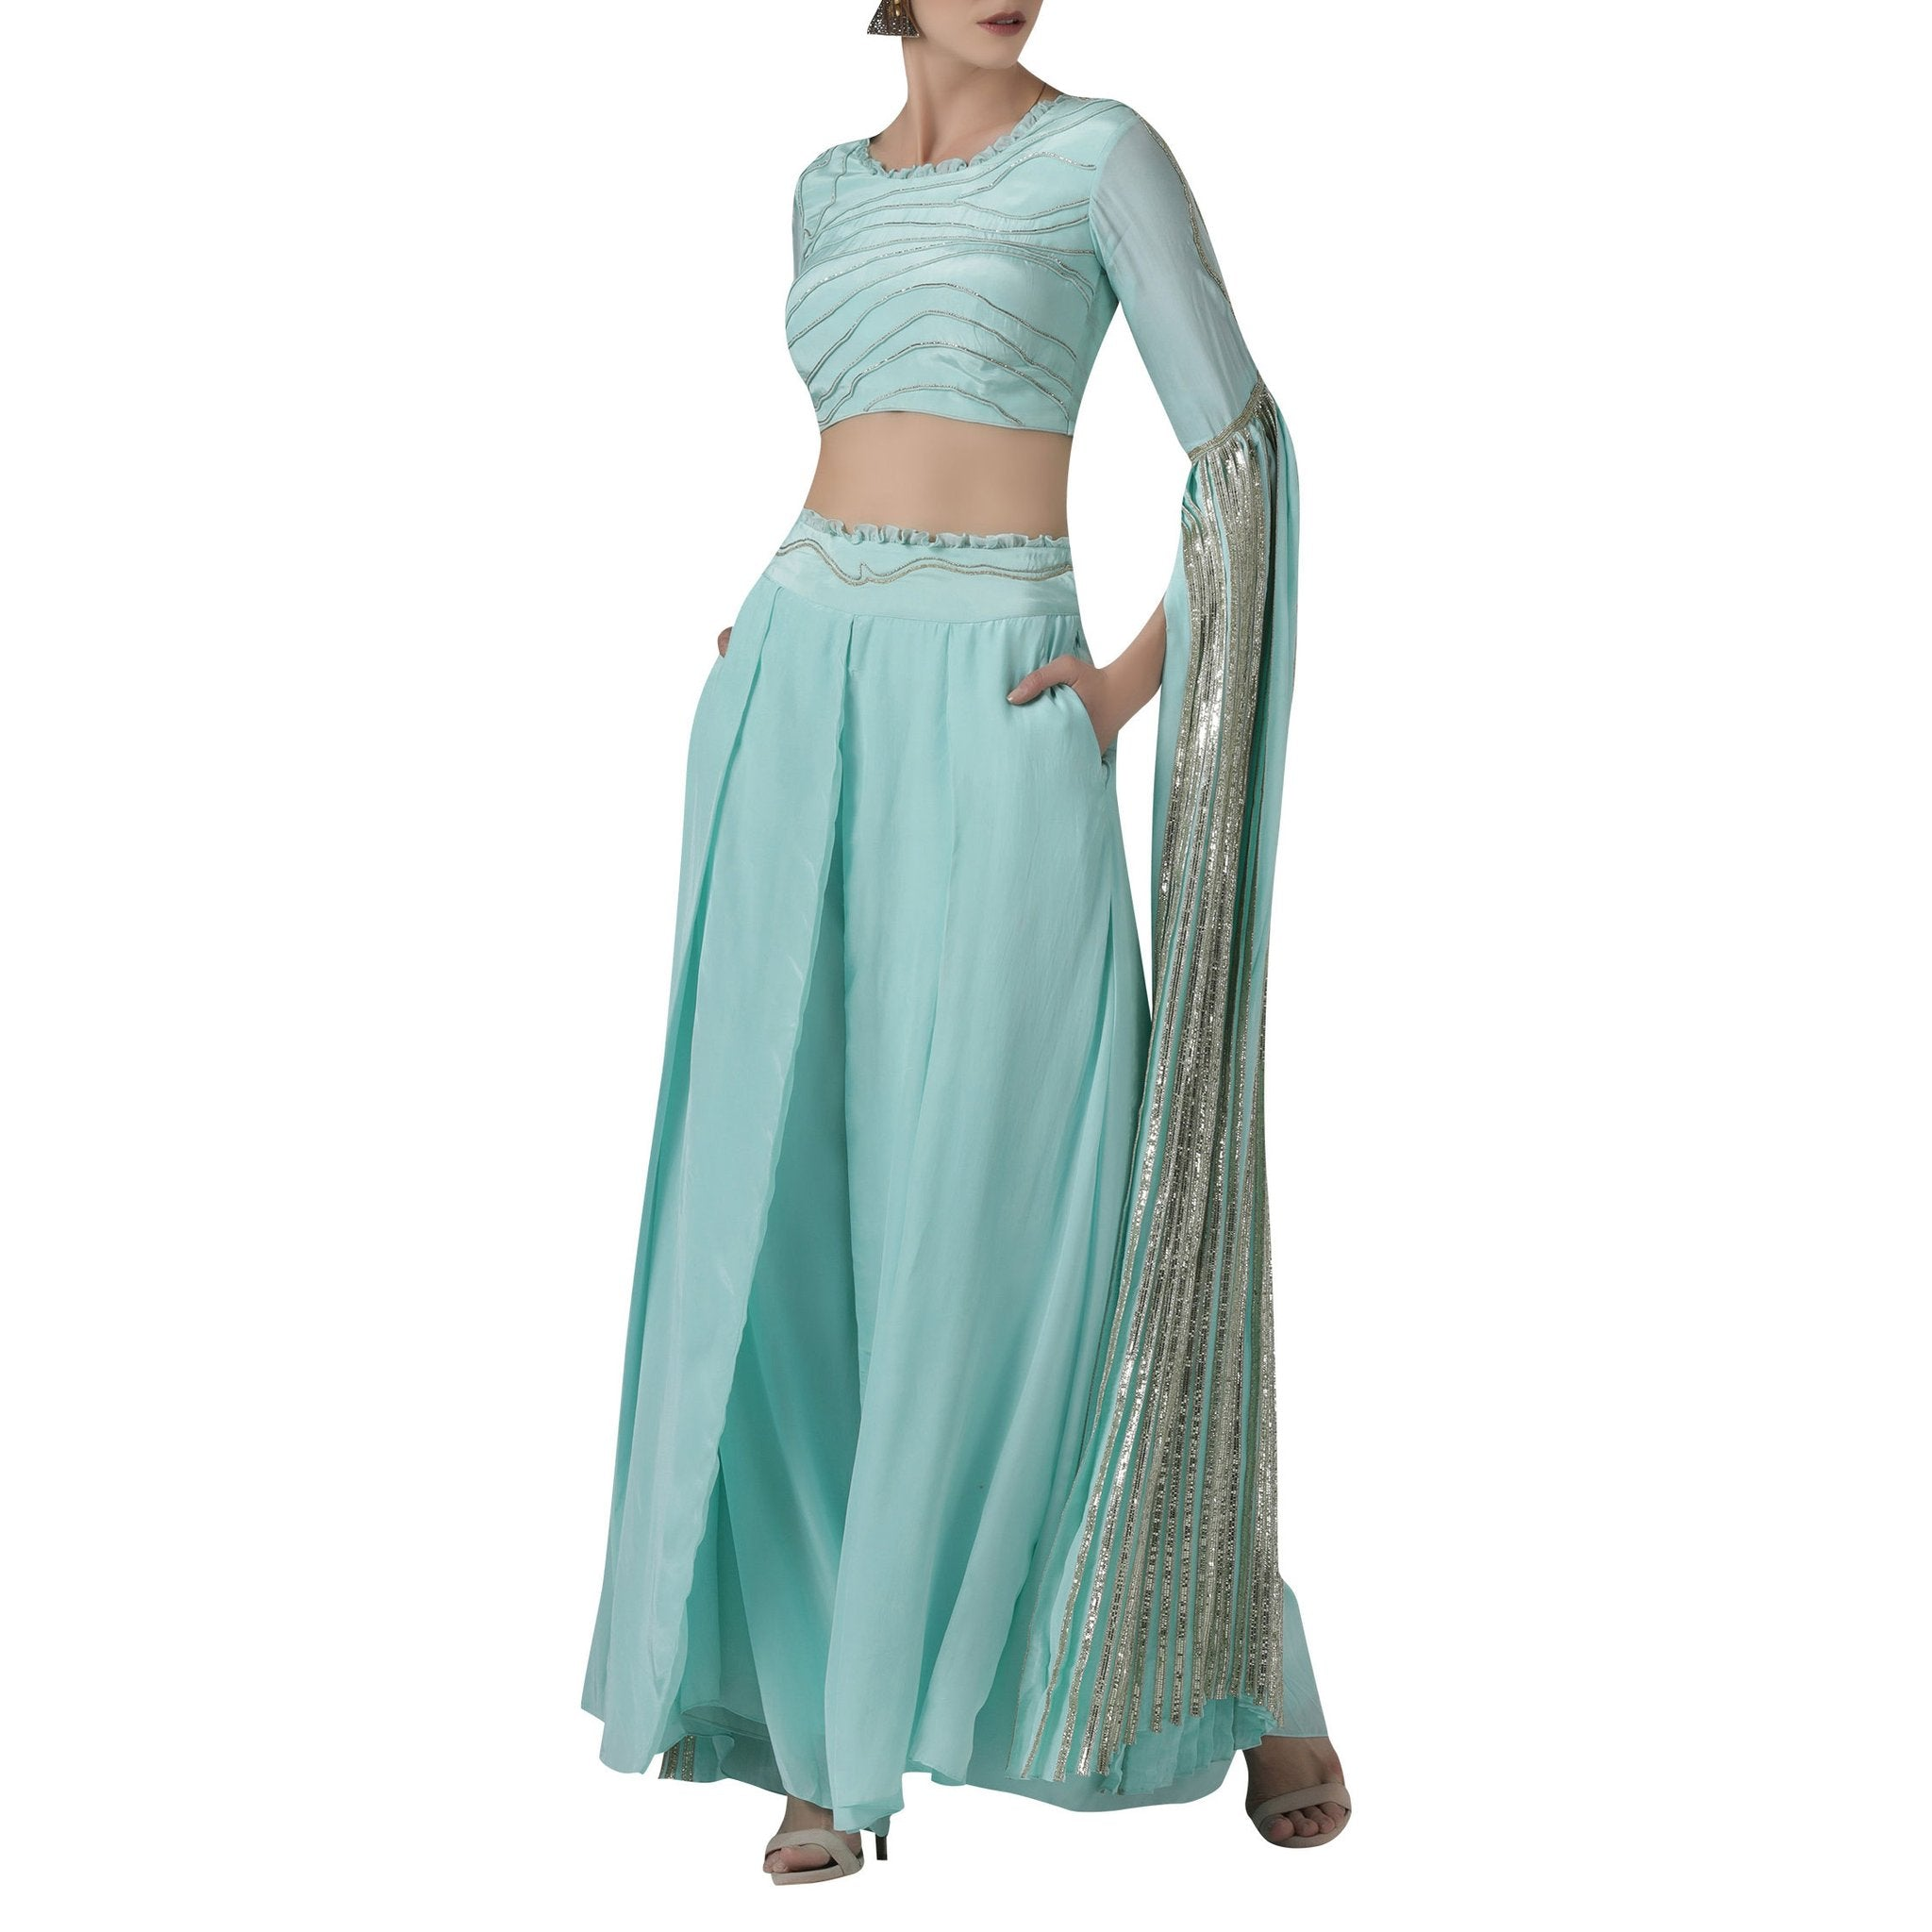 Embroidered Blouse with Exaggerated Sleeves Paired with Wide Legged Pants